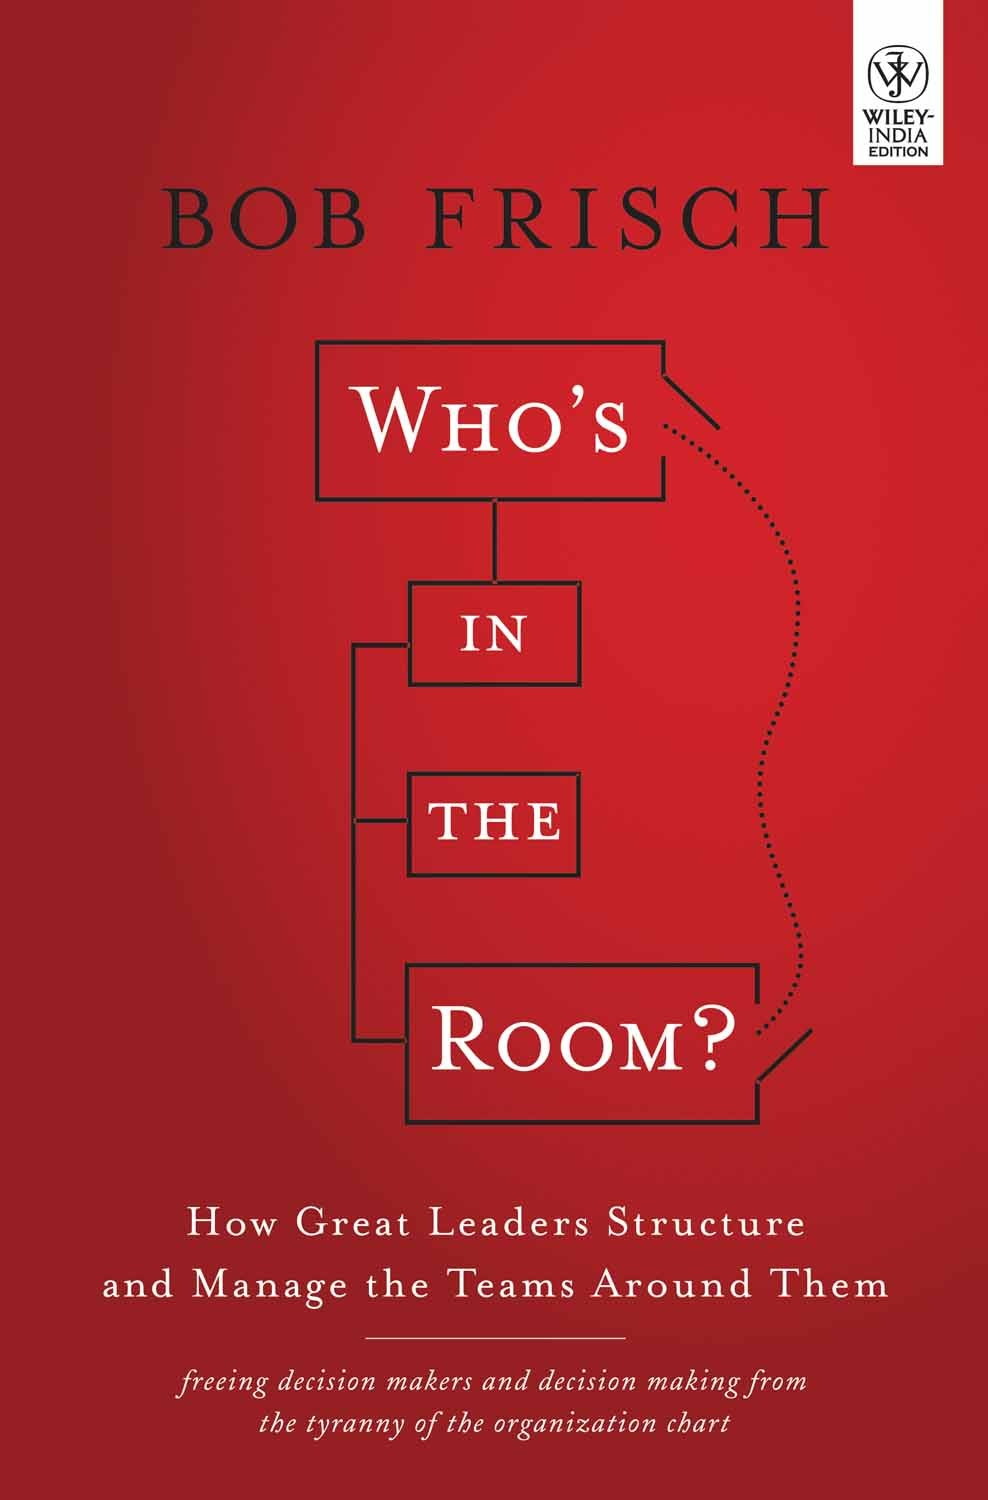 who-s-in-the-room-how-great-leaders-structure-and-manage-the-teams-around-them